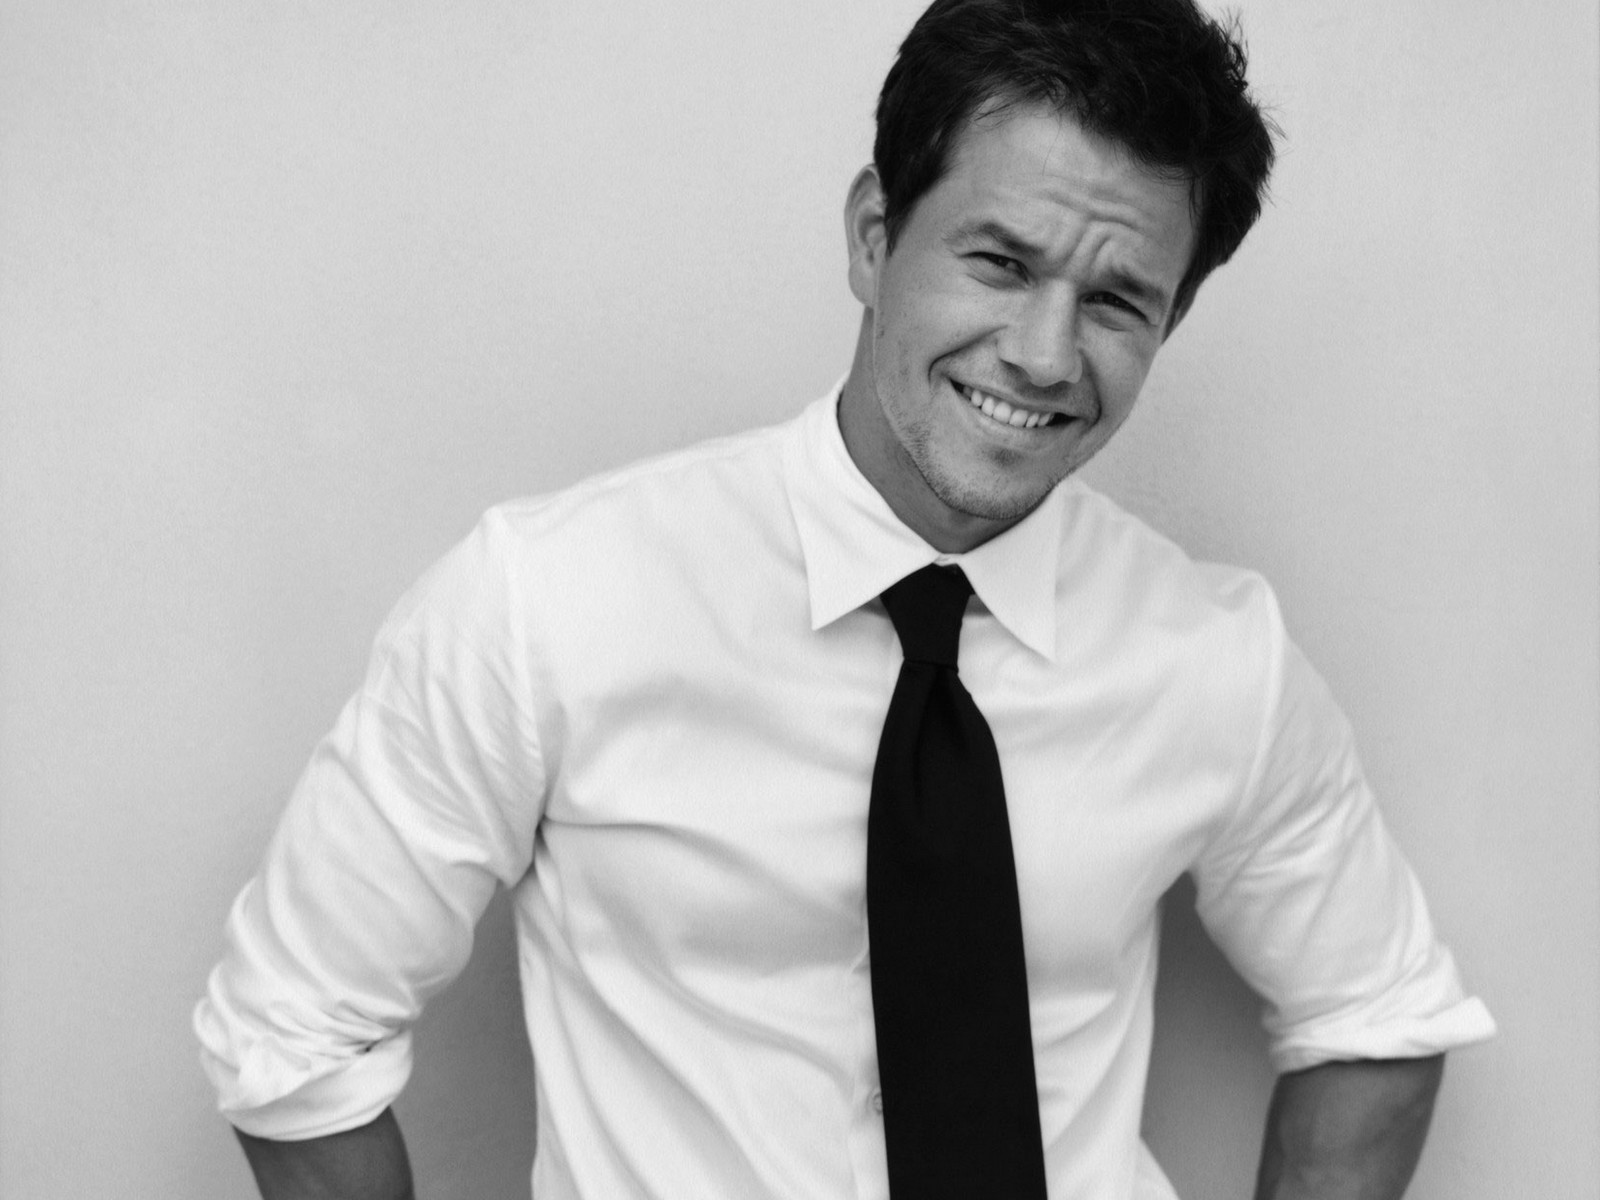 Mark Wahlberg Wallpapers High Resolution and Quality Download Mark Wahlberg